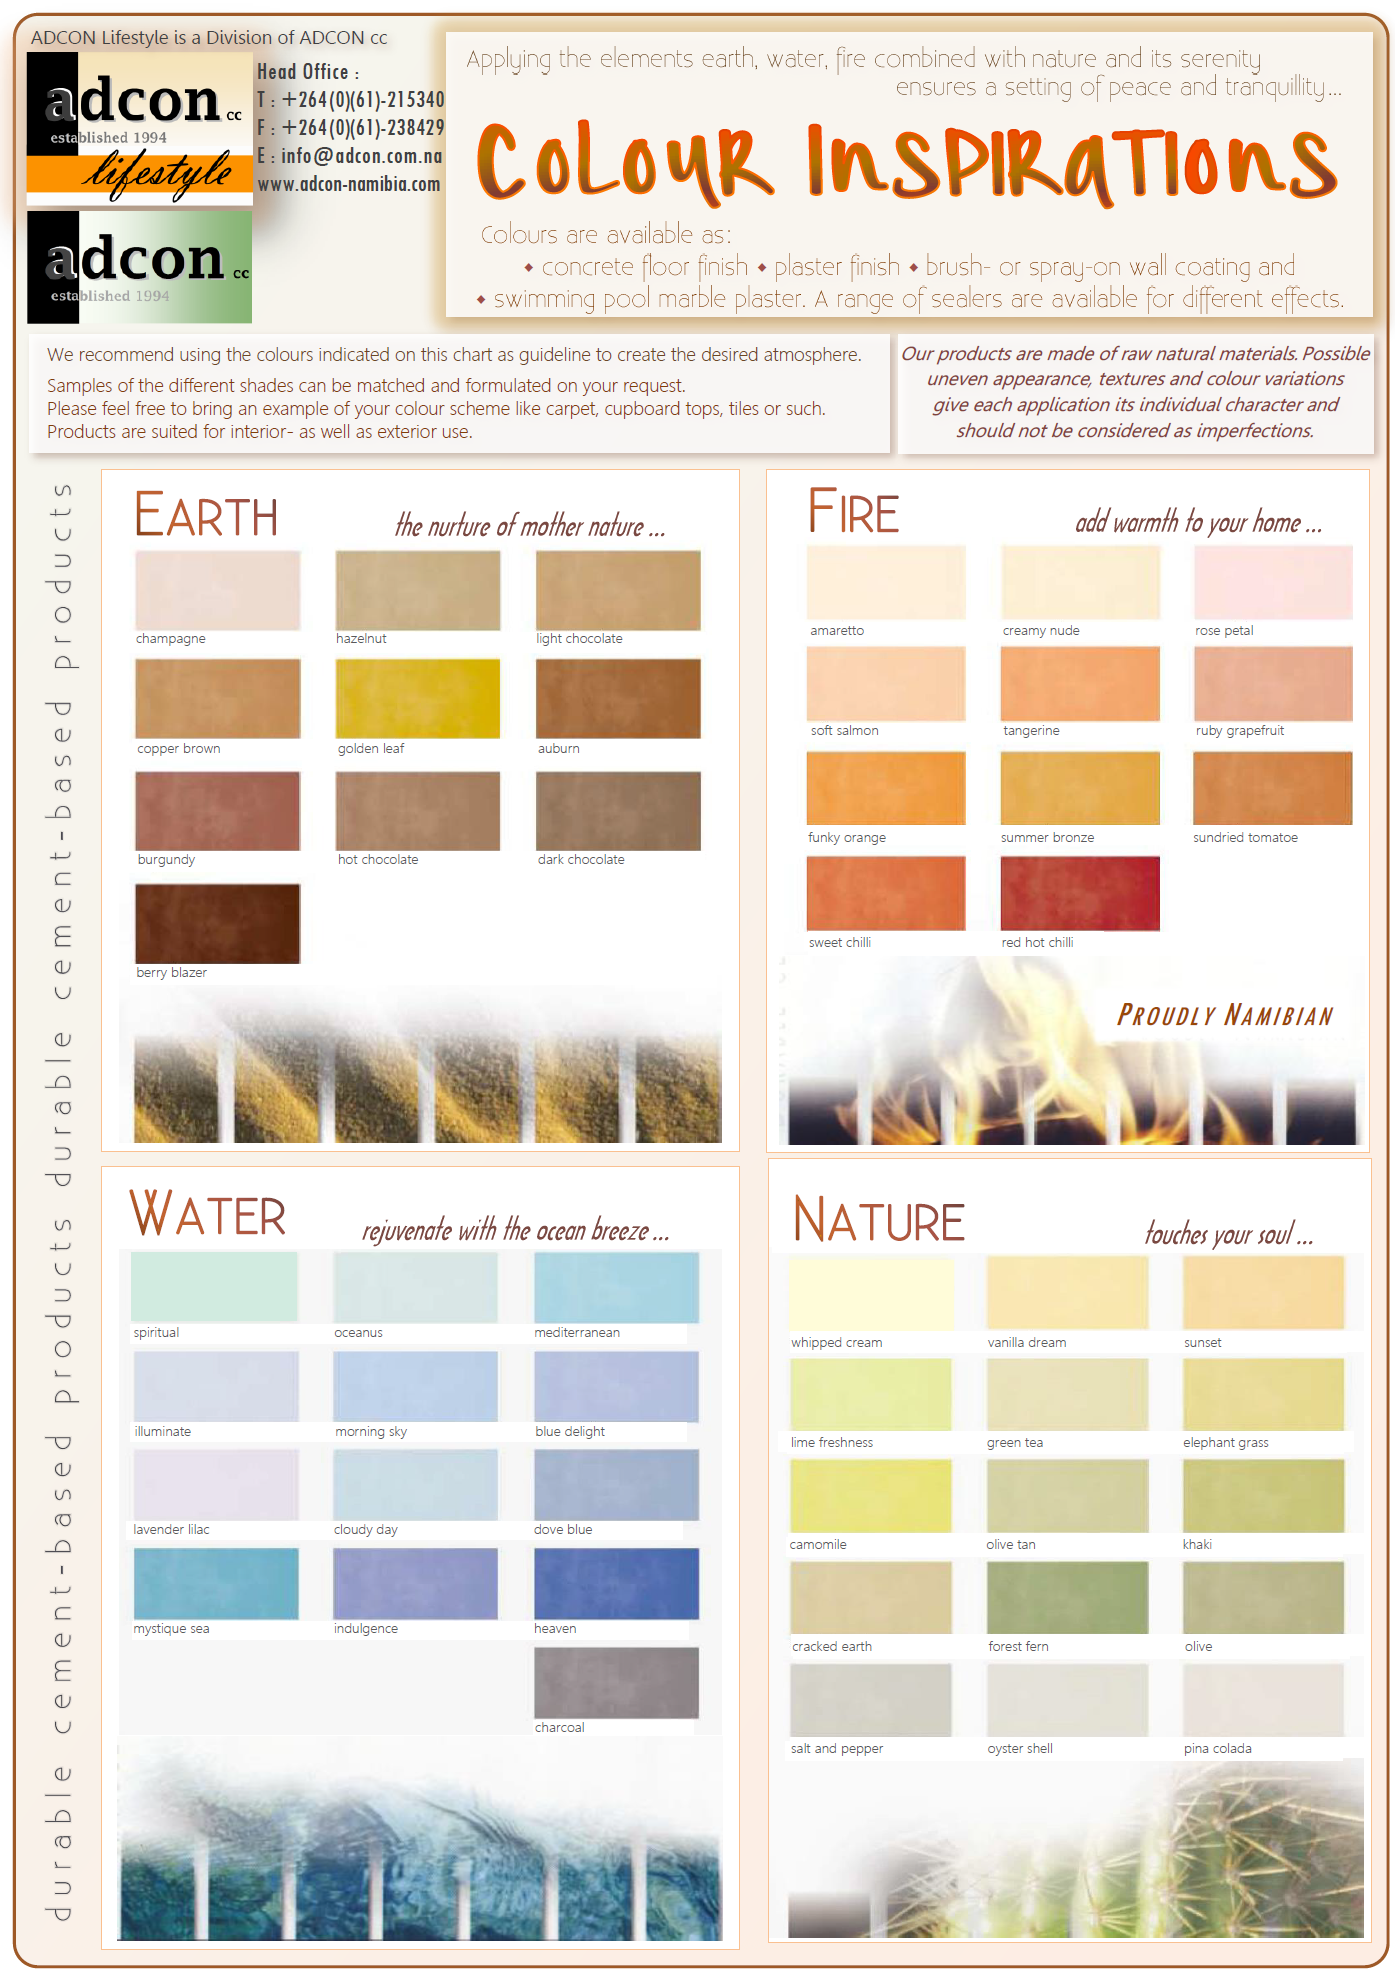 Adcon lifestyle colour chart adcon adcon lifestyle colour chart geenschuldenfo Choice Image